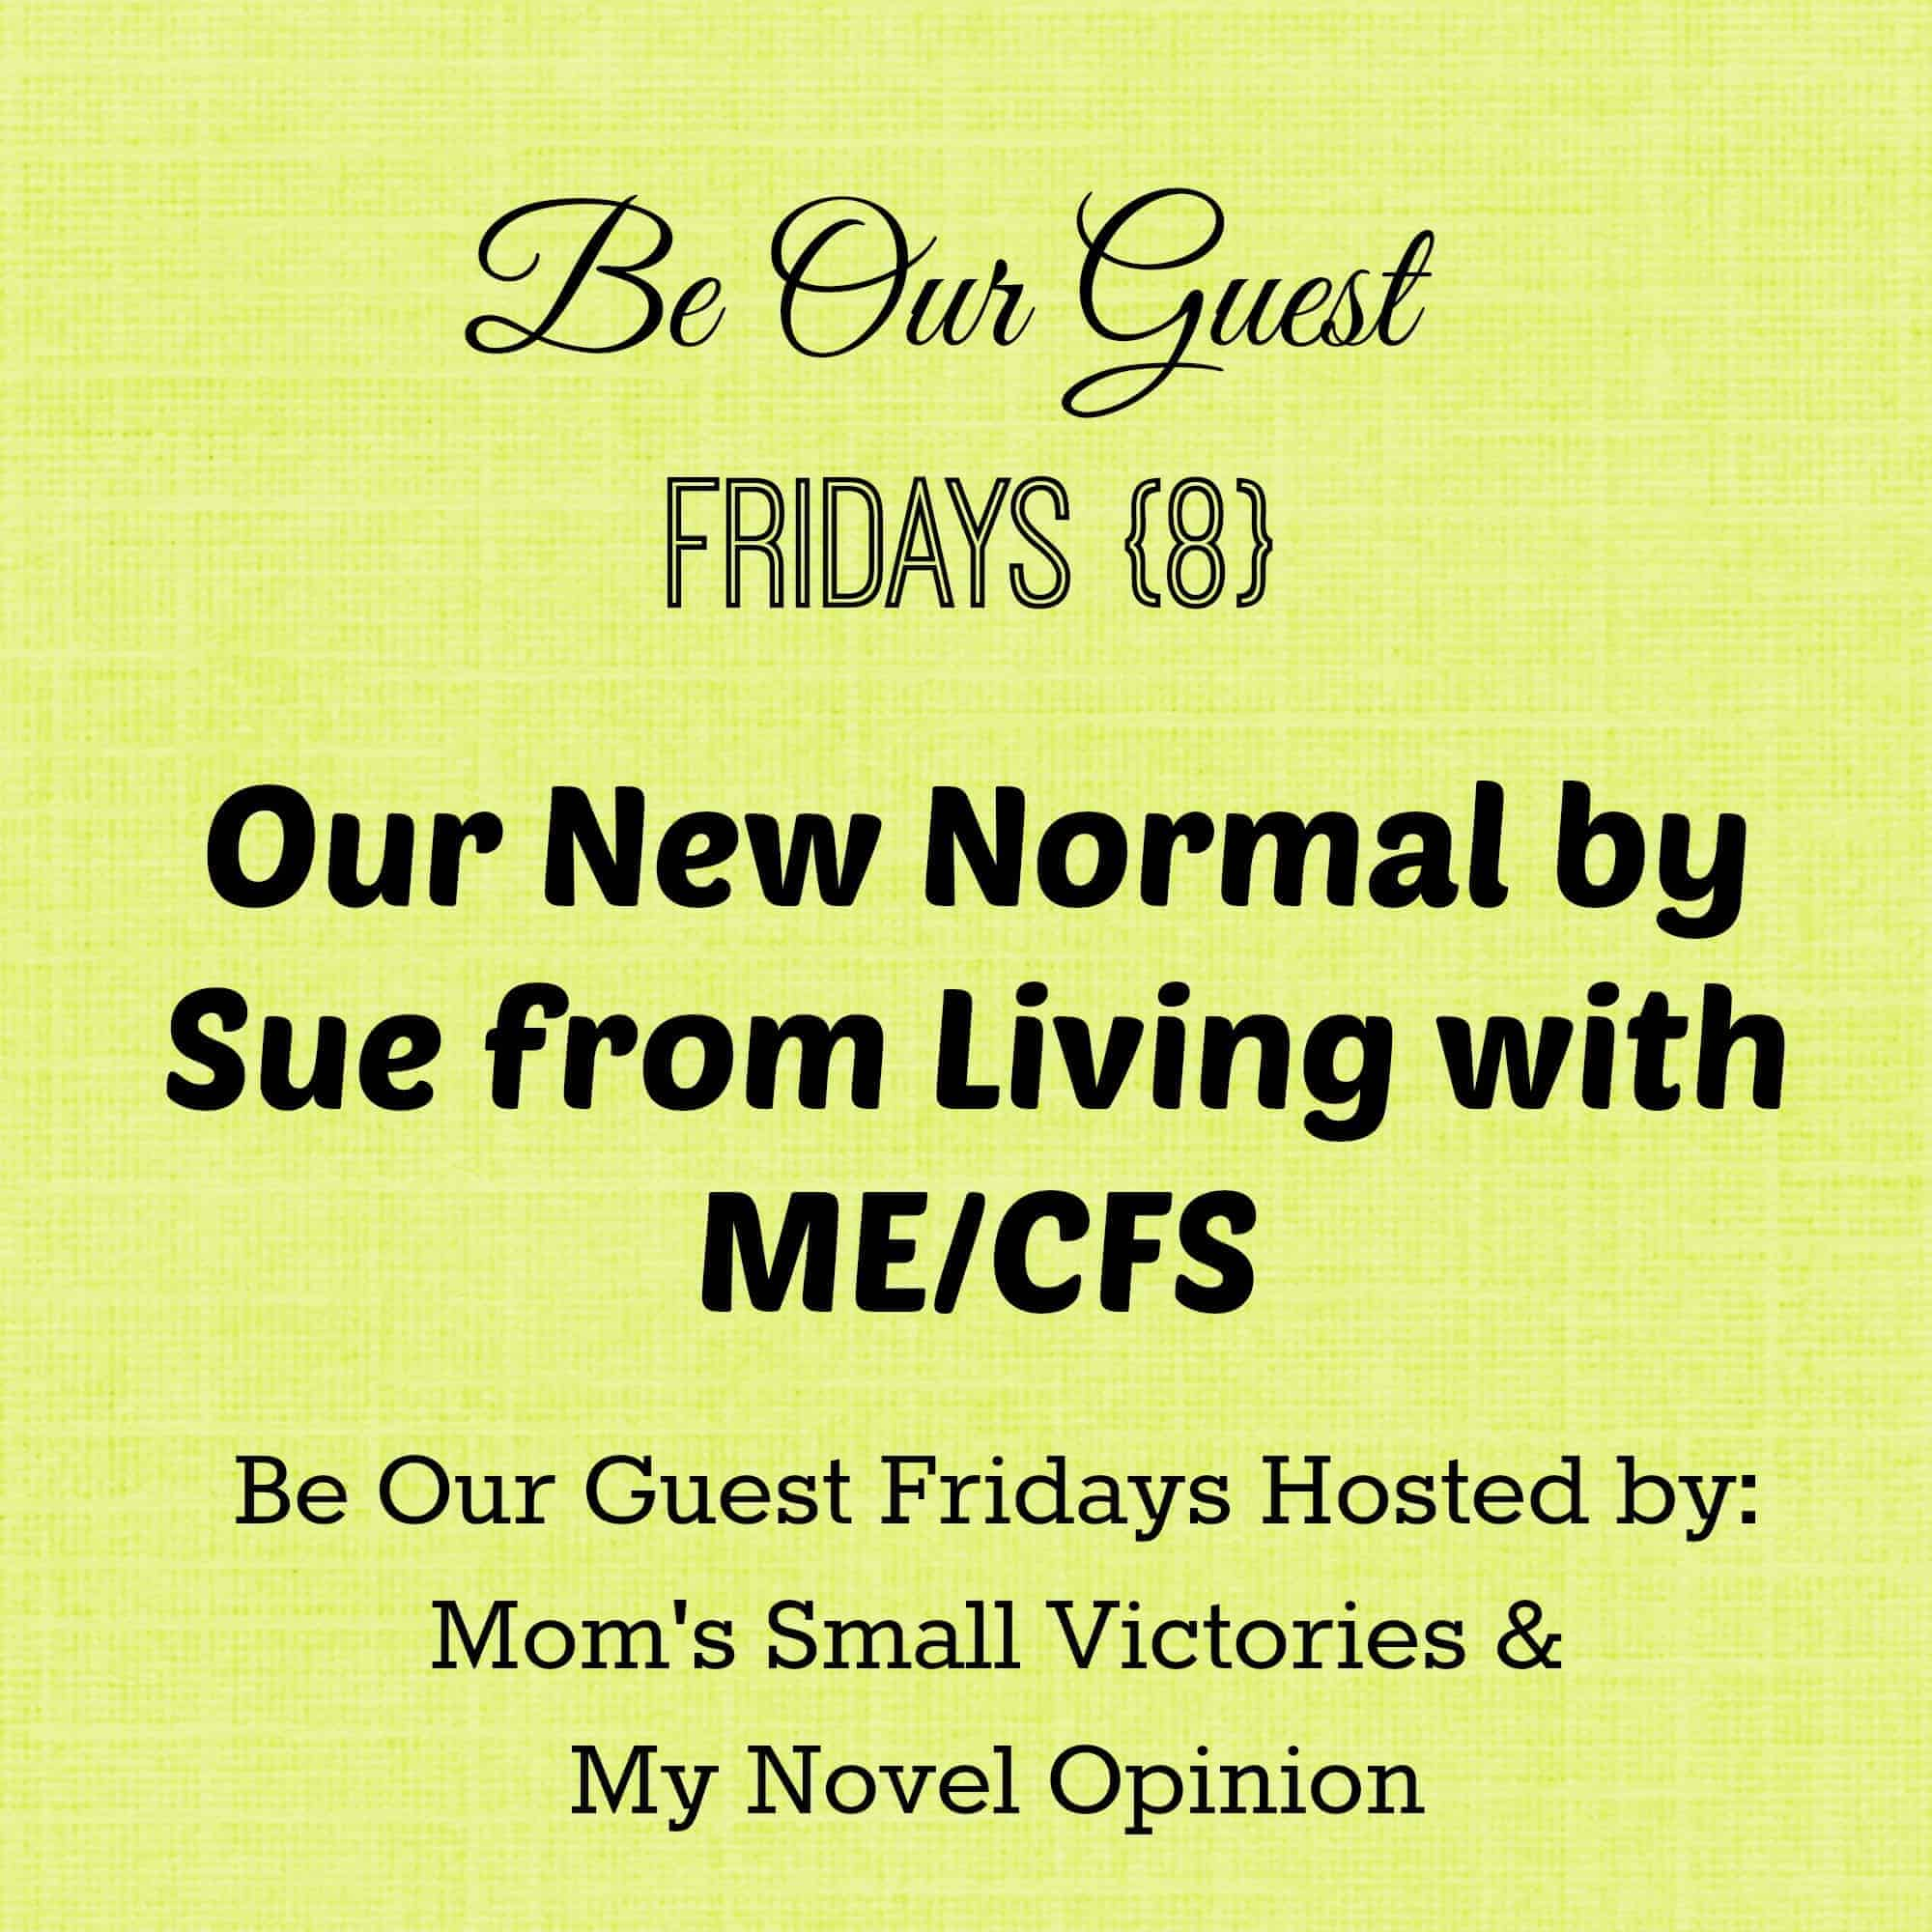 Be Our Guest Fridays {8}: Our New Normal by Sue from Living with ME/CFS